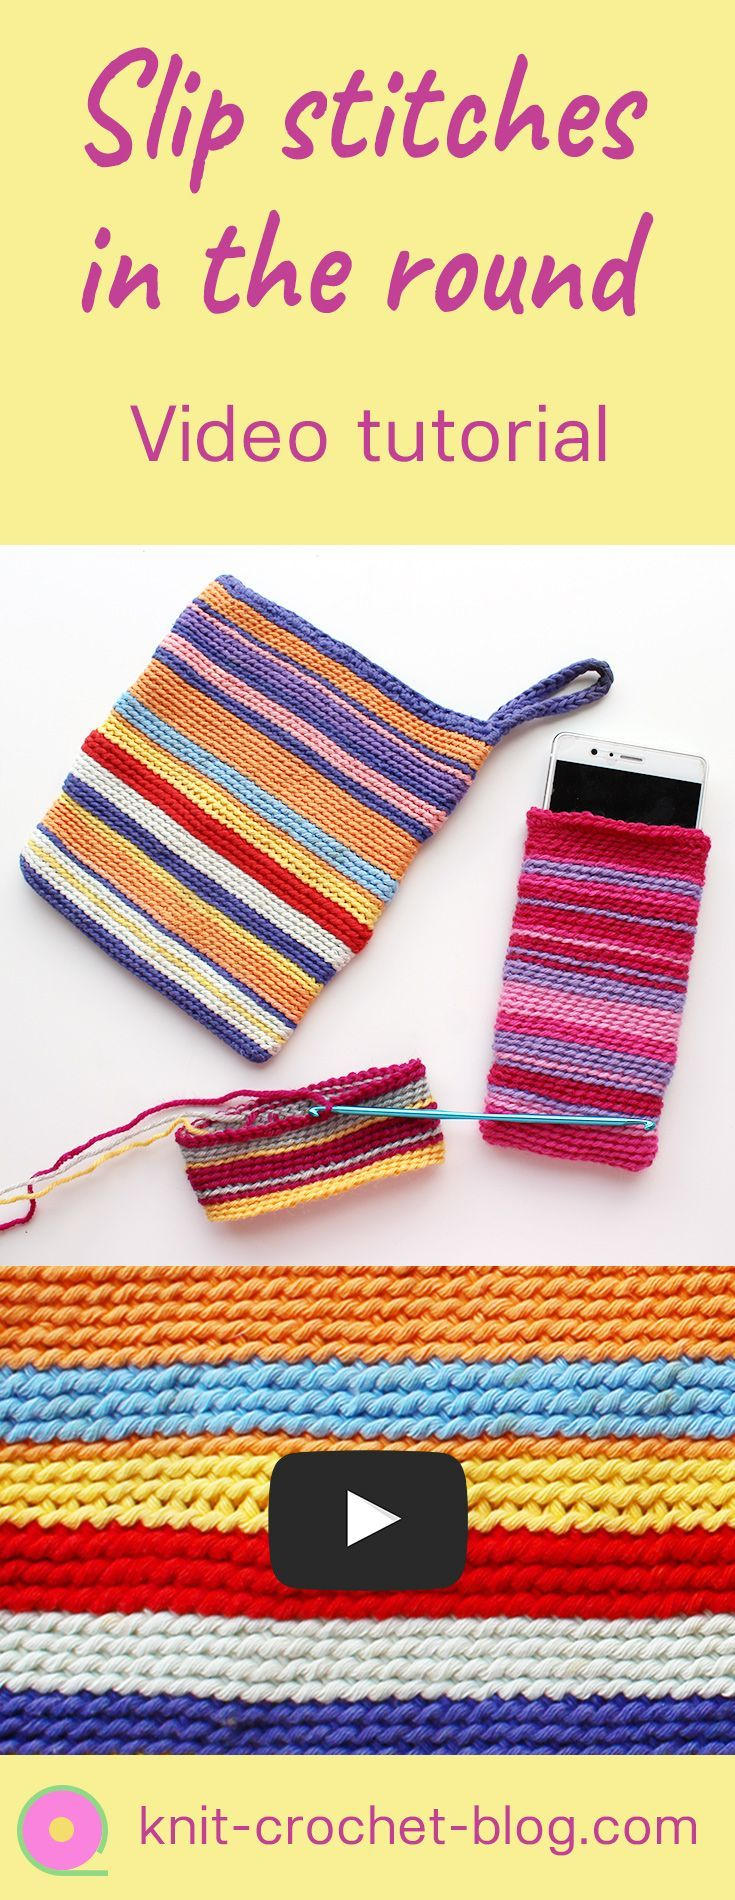 Slip stitch crochet in the round. Create easy colorful crochet projects